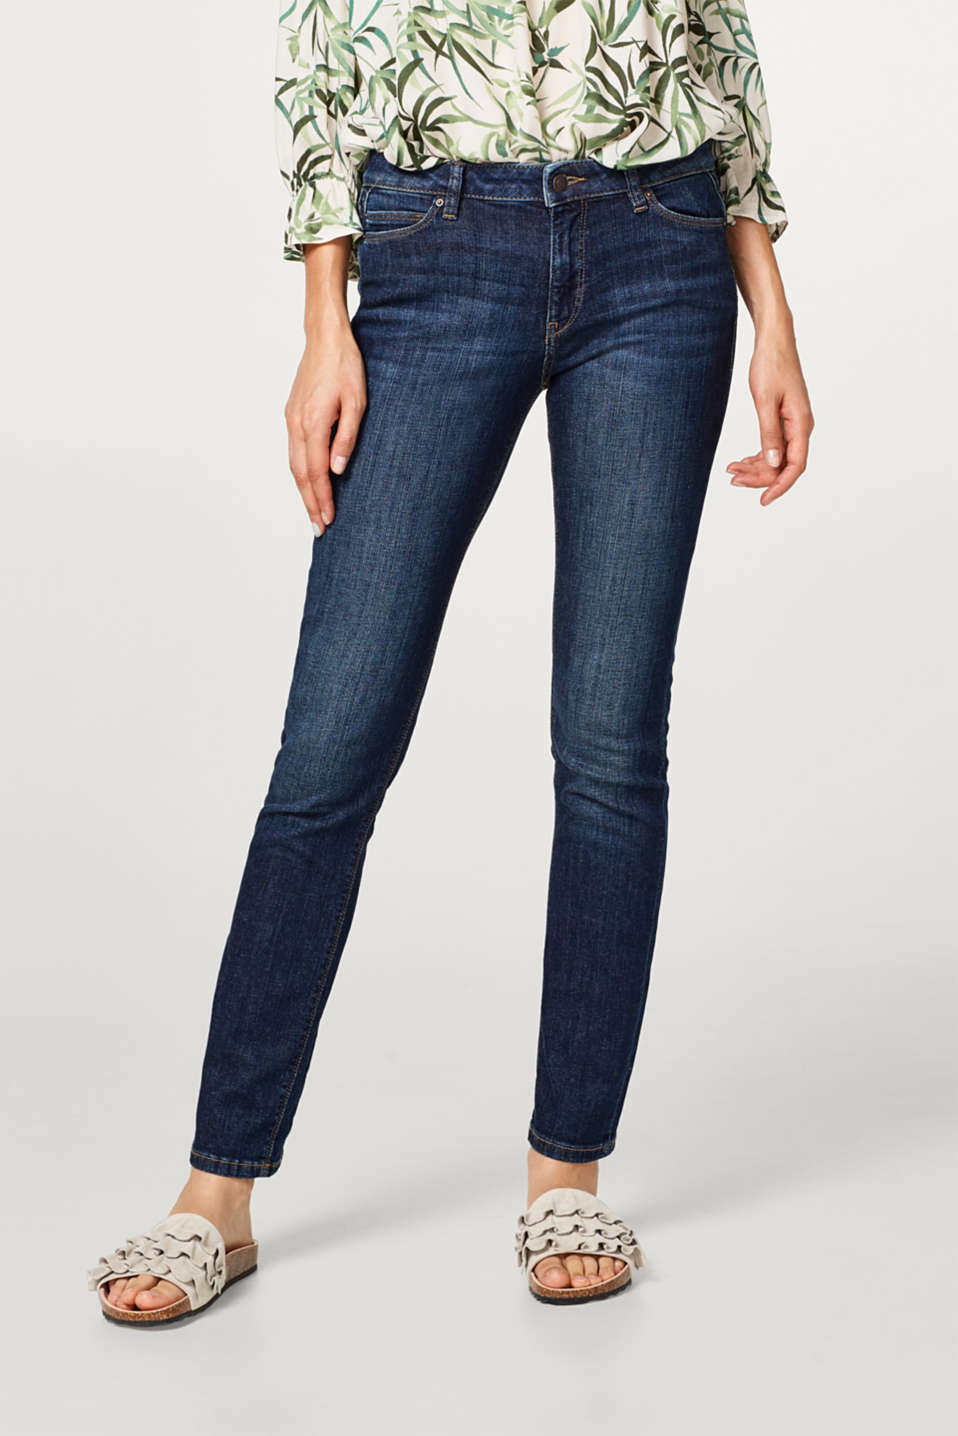 Esprit - Stretch jeans in an authentic wash